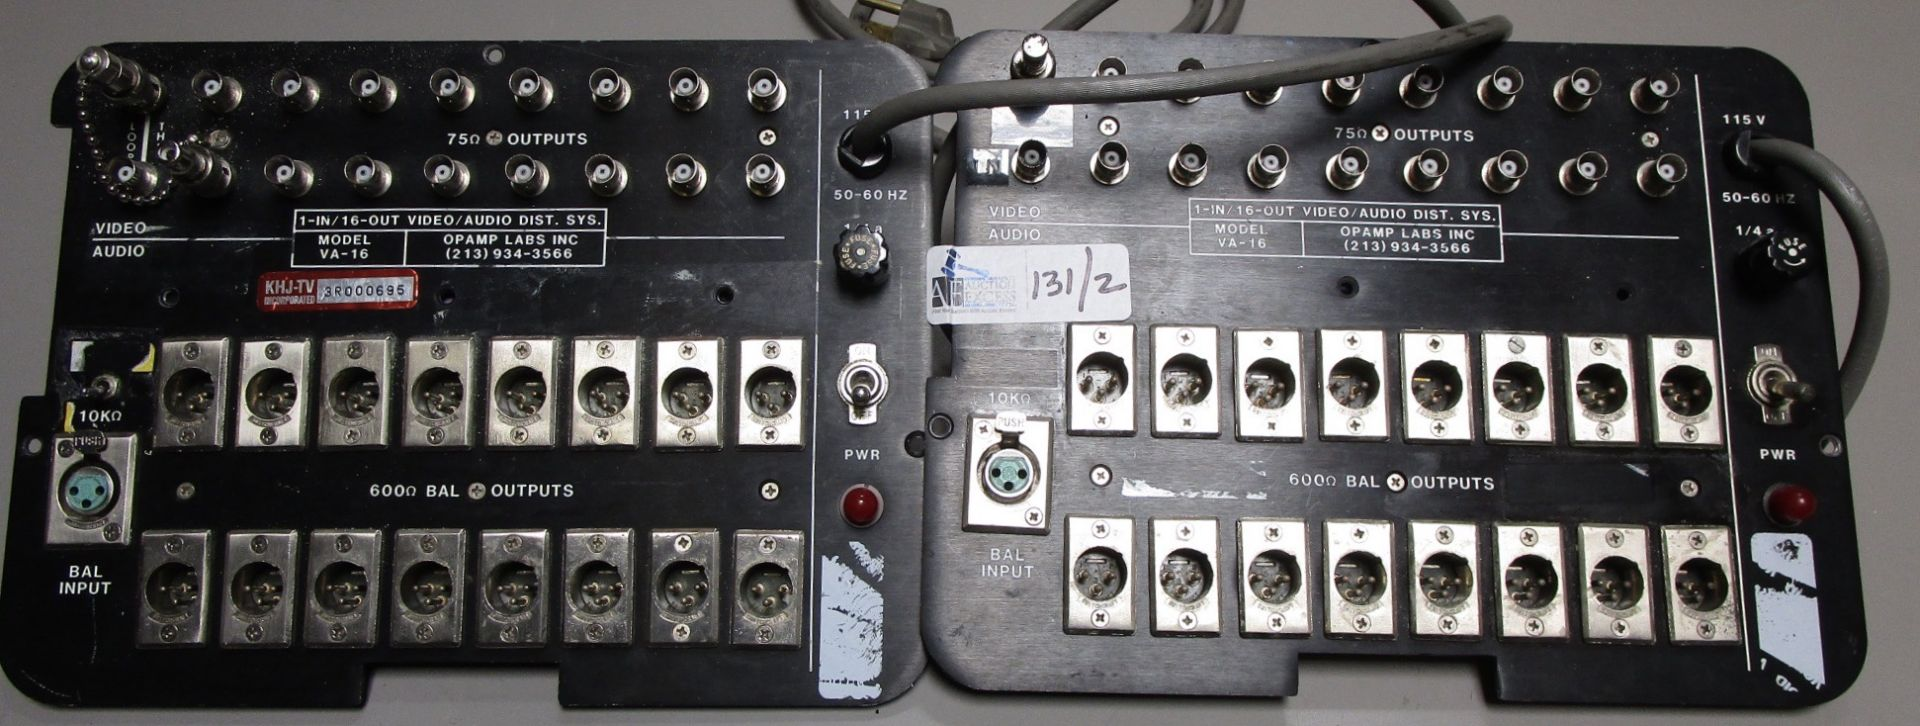 Lot 131 - OP AMP LAB VA-16 IN/OUT ACTIVE A/V PANEL 1 IN 16 OUT